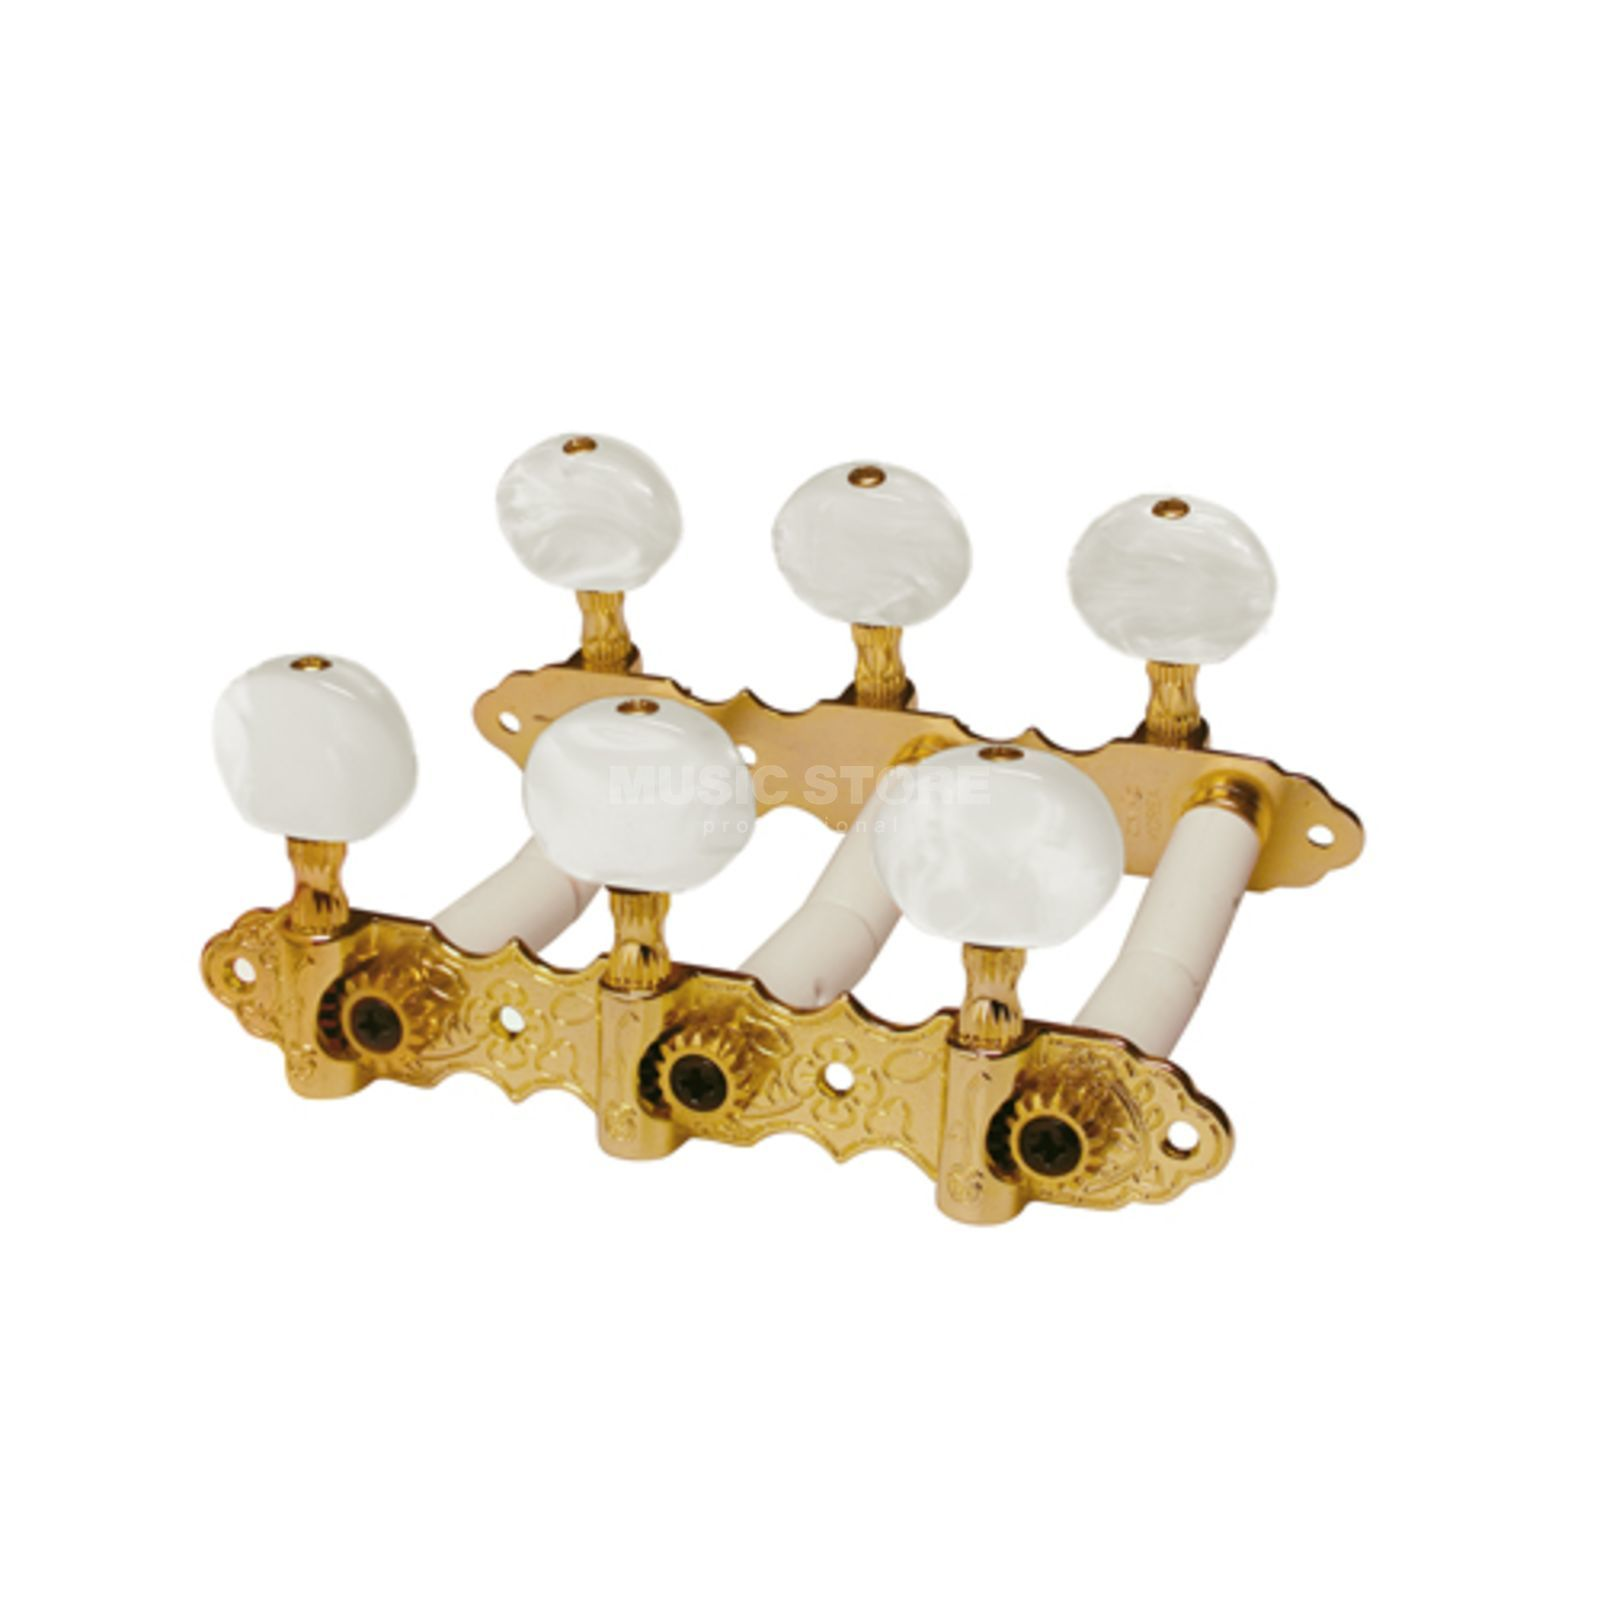 Boston Klassik Mechaniken gold White Pearl Buttons 35mm Produktbild